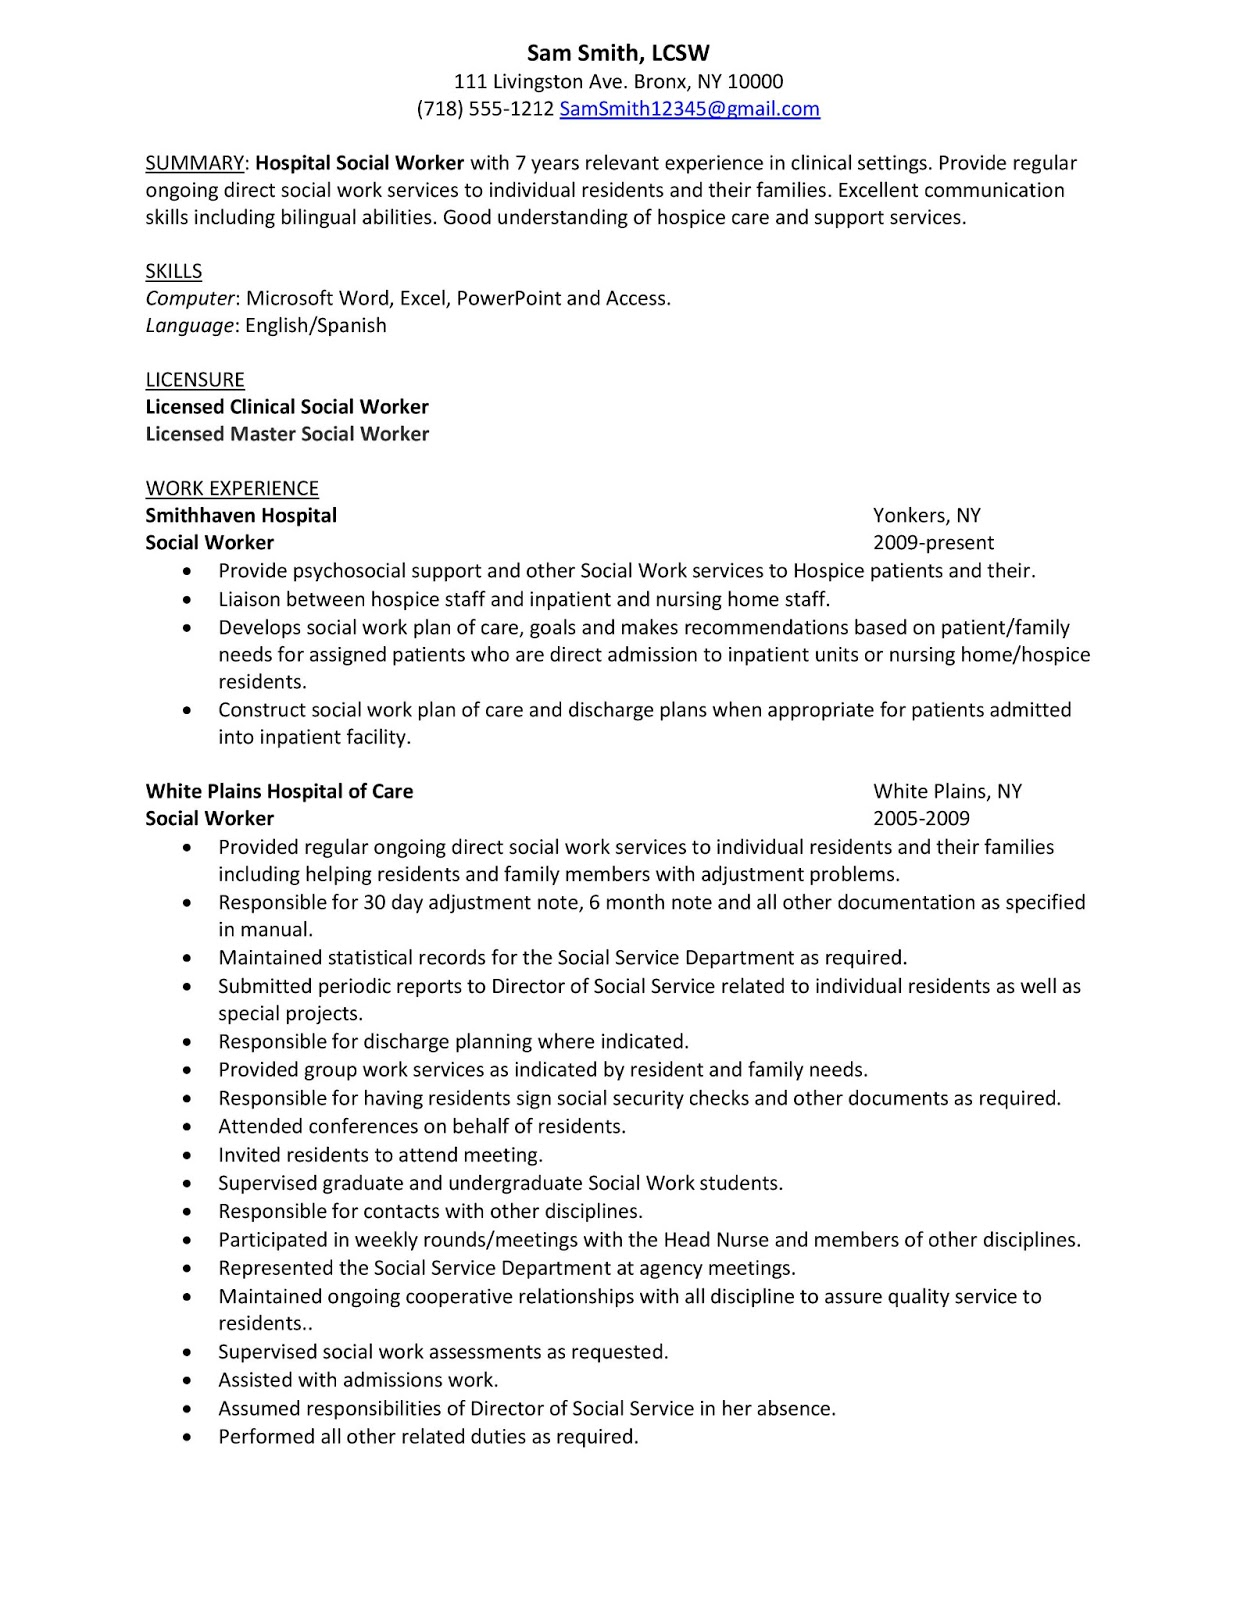 sample resume hospital social worker career advice pro wrestling business for job Resume Resume For Hospital Job